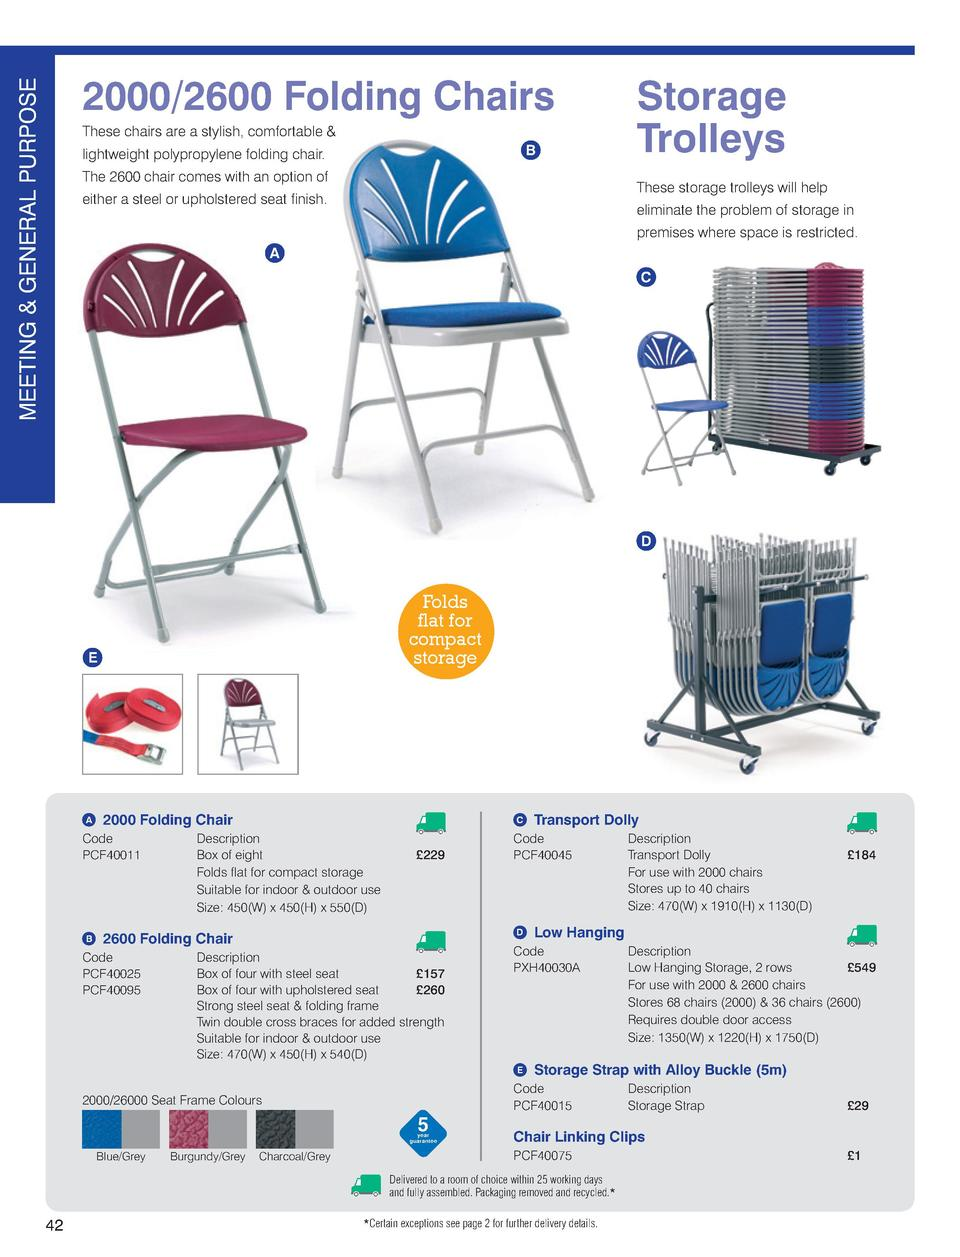 MEETING GENERAL PURPOSE 2000 2600 Folding Chairs These Chairs Are A  Stylish, Comfortable B Lightweight